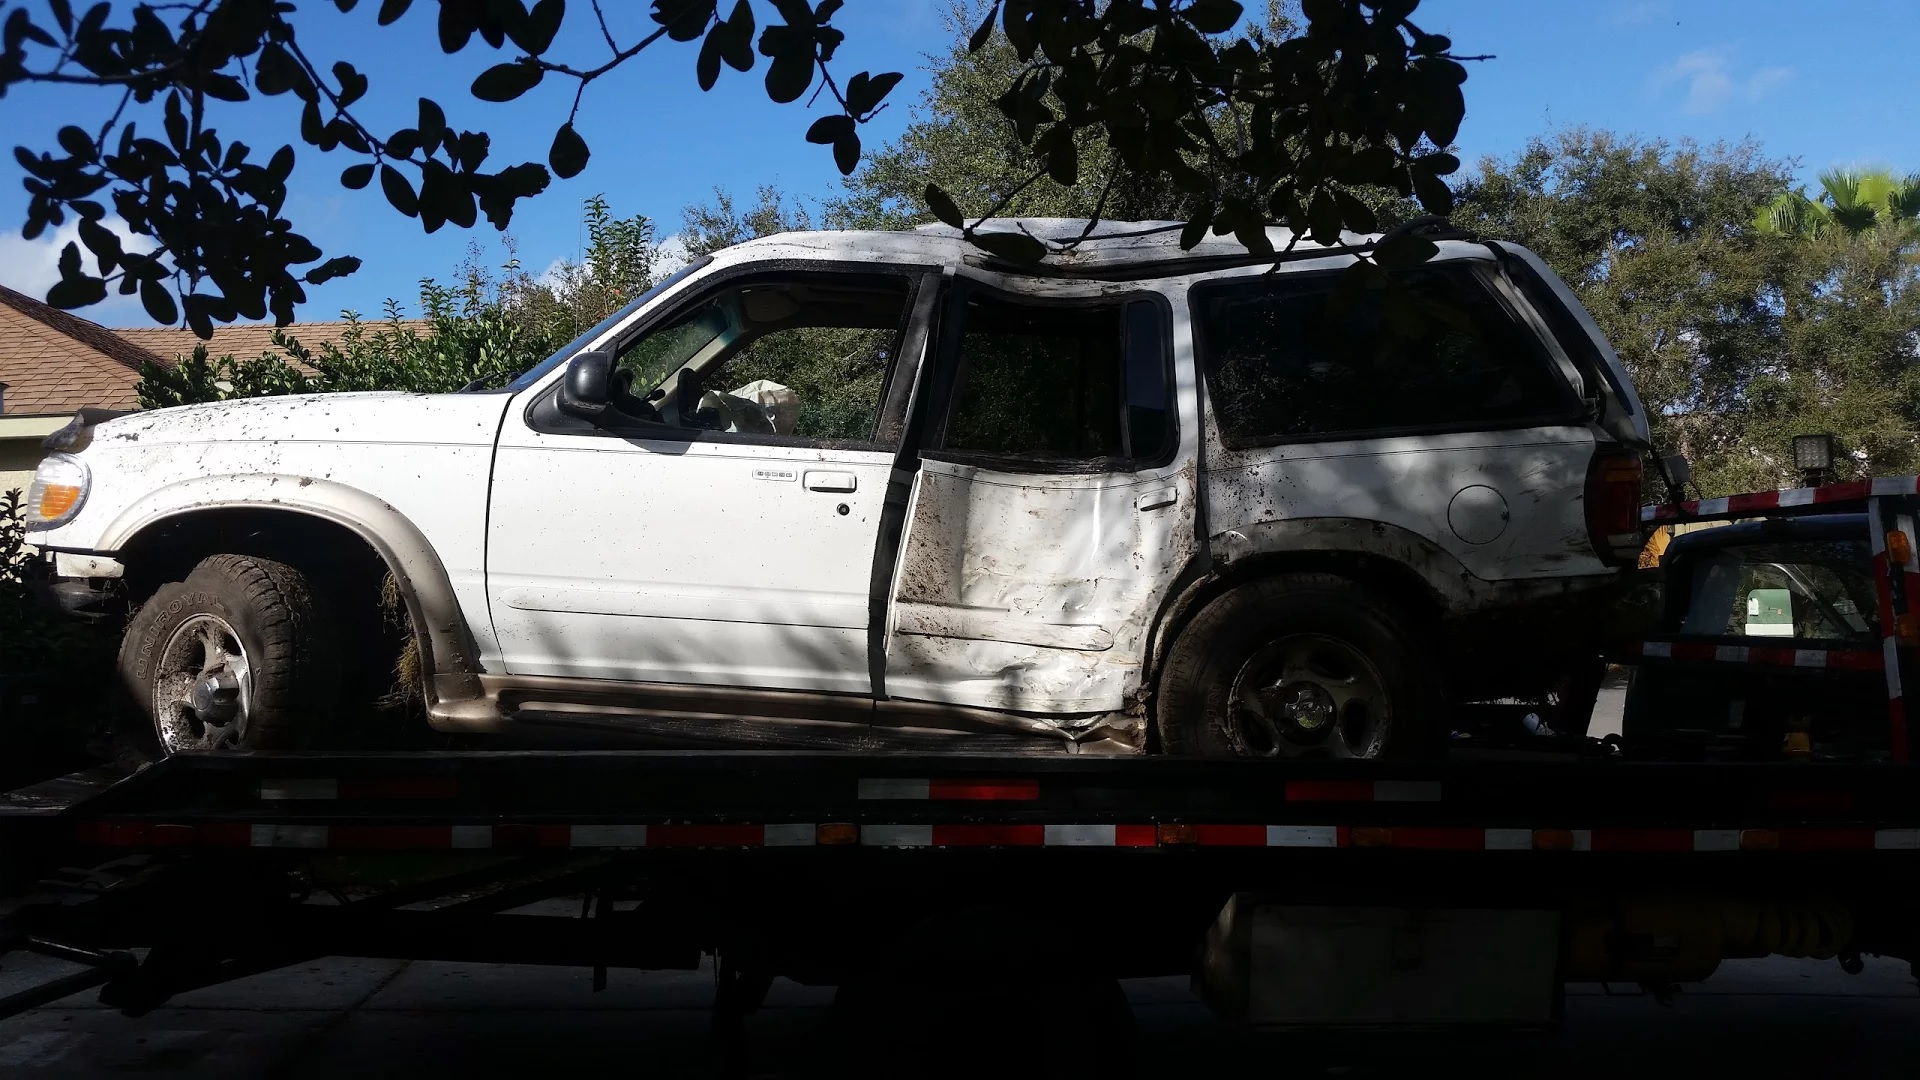 1999 Ford Explorer, mud roll over, all bent out of shape